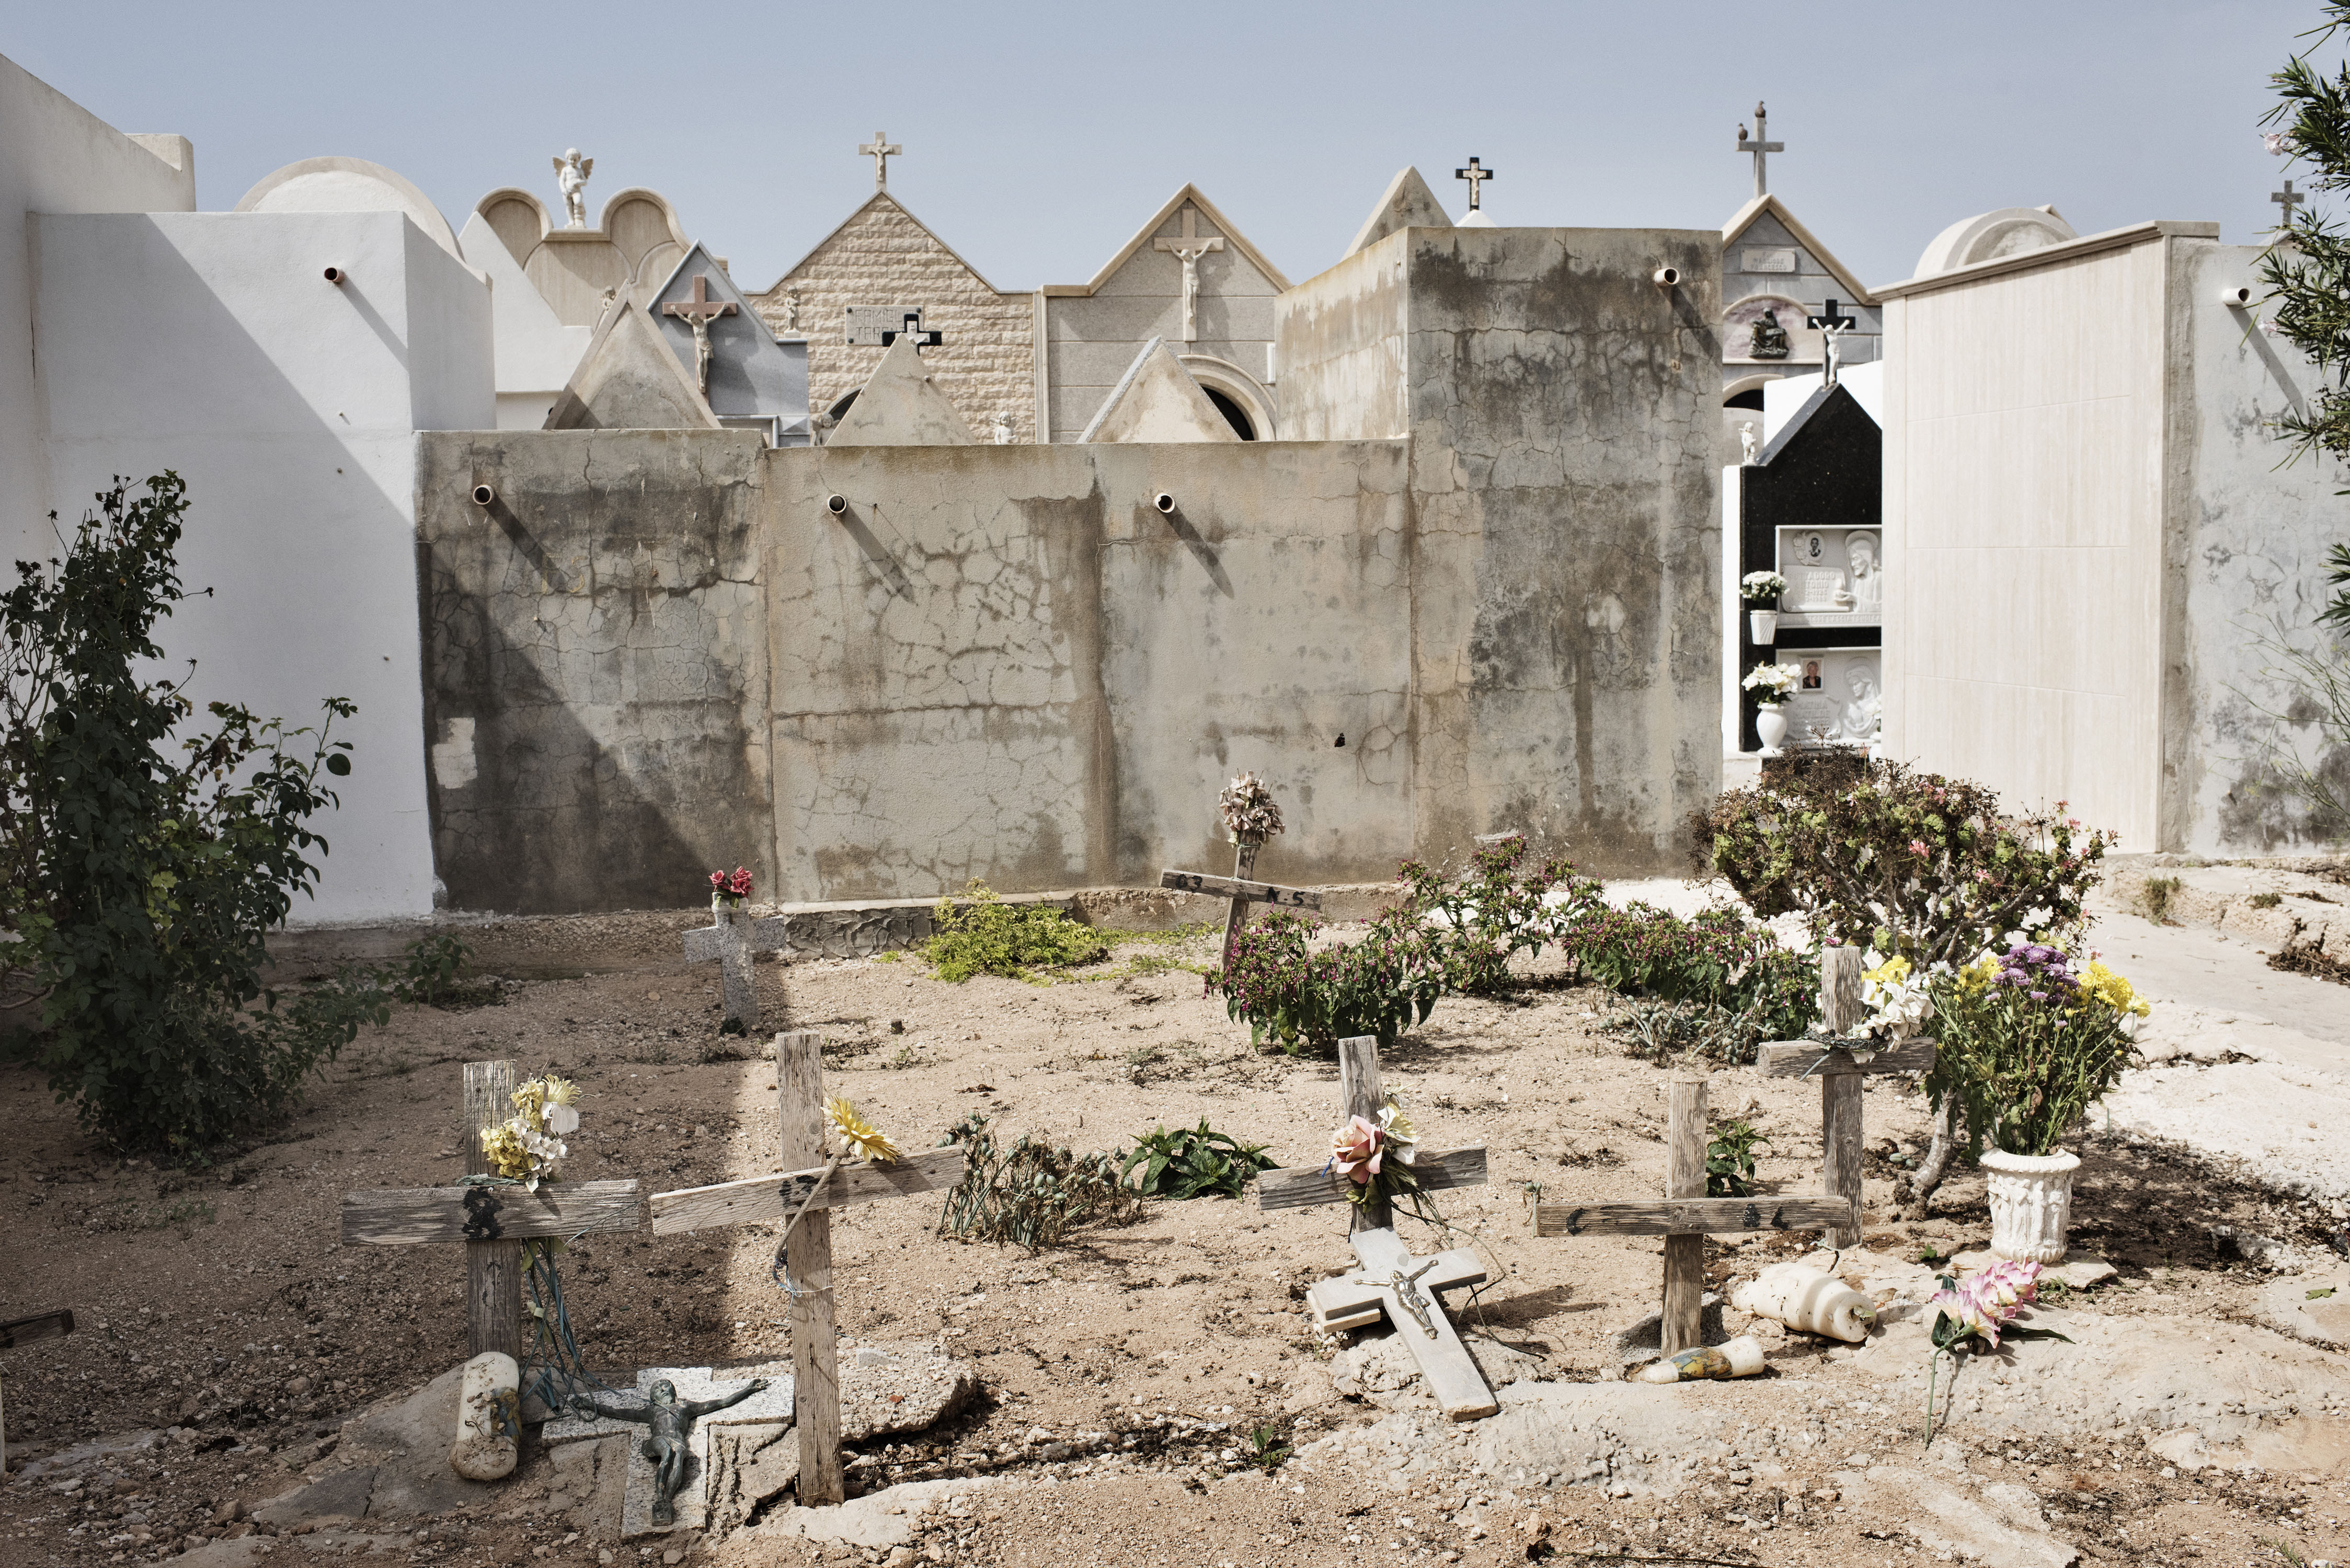 The nameless graves in the cemetery belong to unidentified migrants found dead on the beach of Lampedusa in Italy.